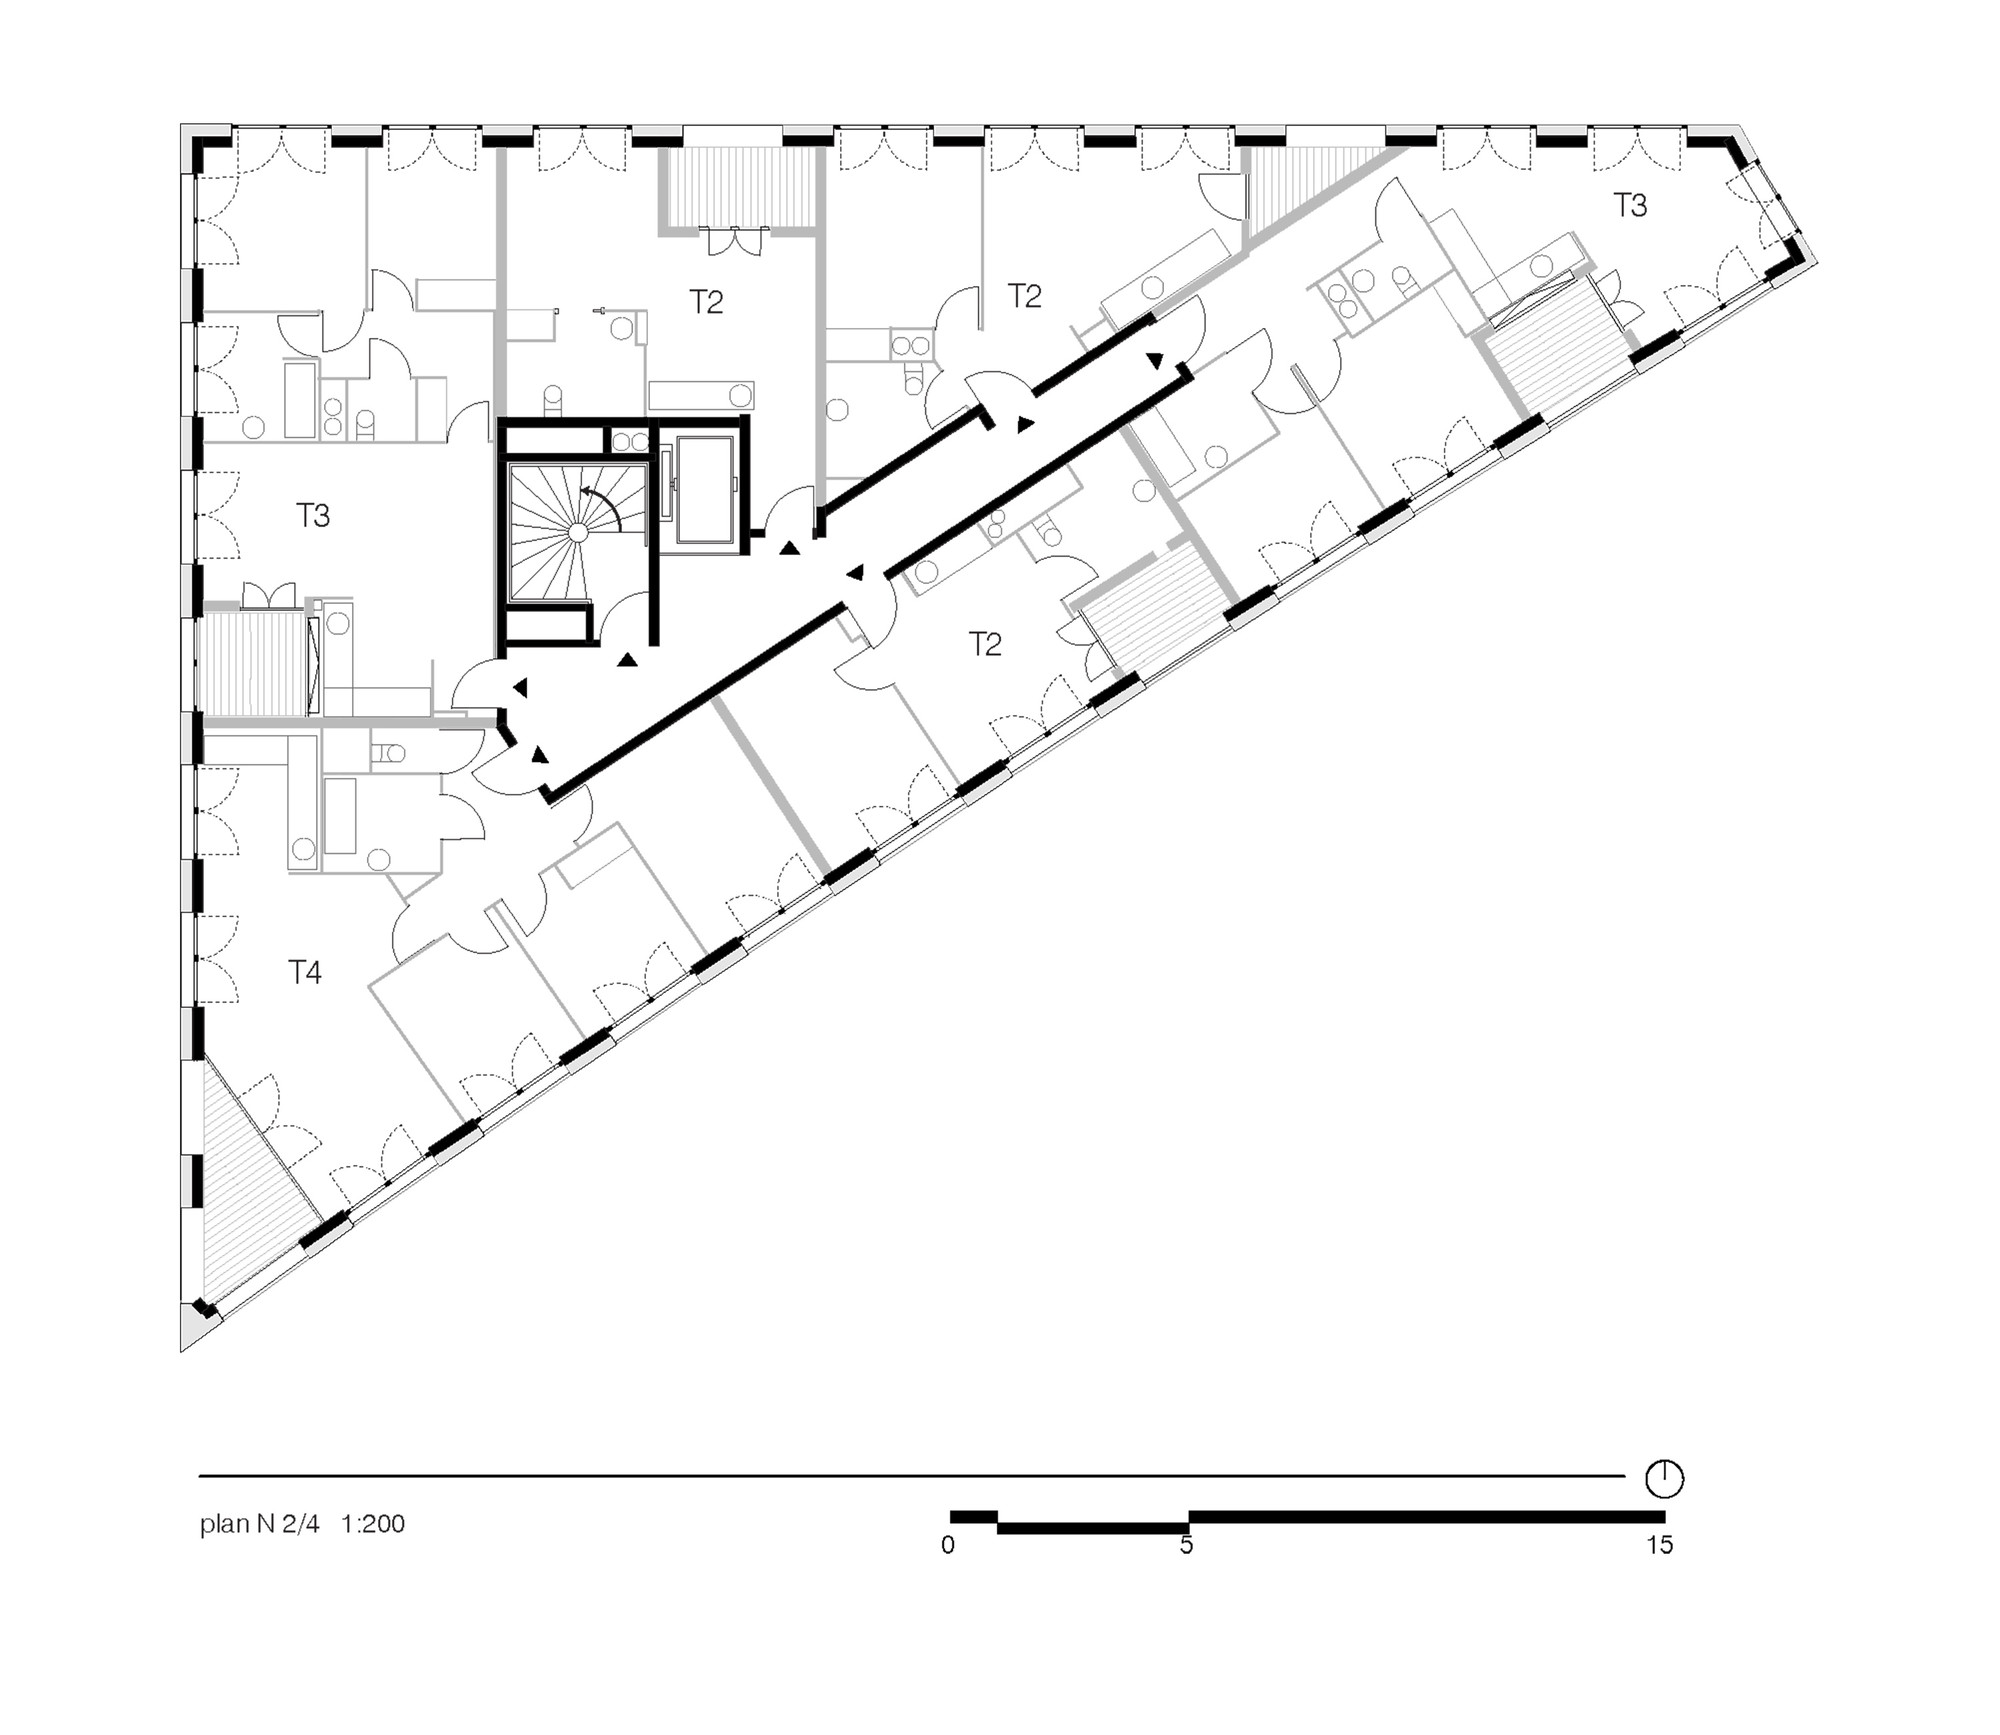 gallery of 40 housing units lan architecture 24